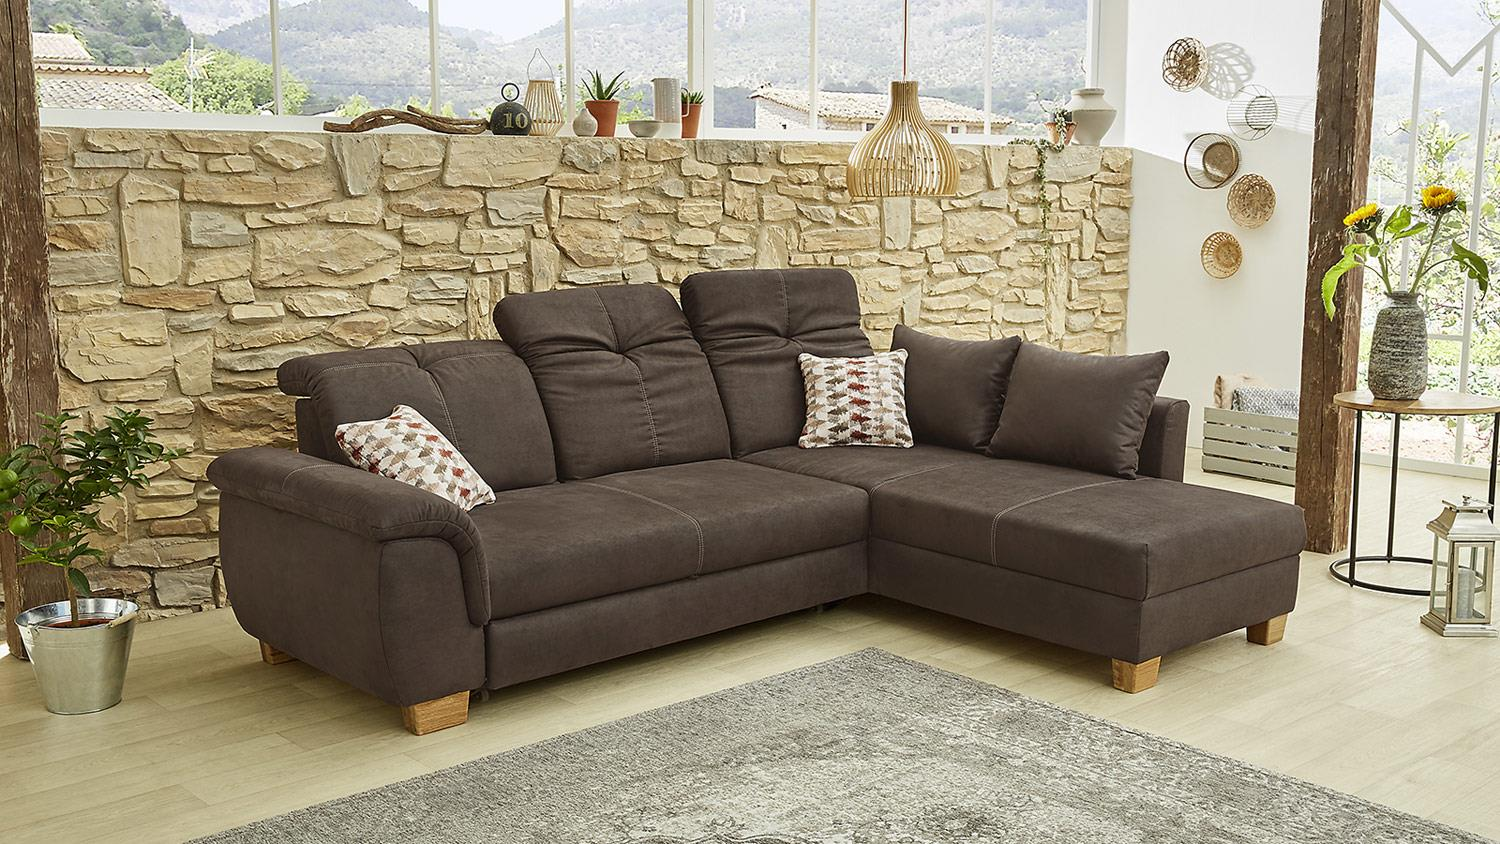 ecksofa country sofa wohnlandschaft in antik braun mit. Black Bedroom Furniture Sets. Home Design Ideas